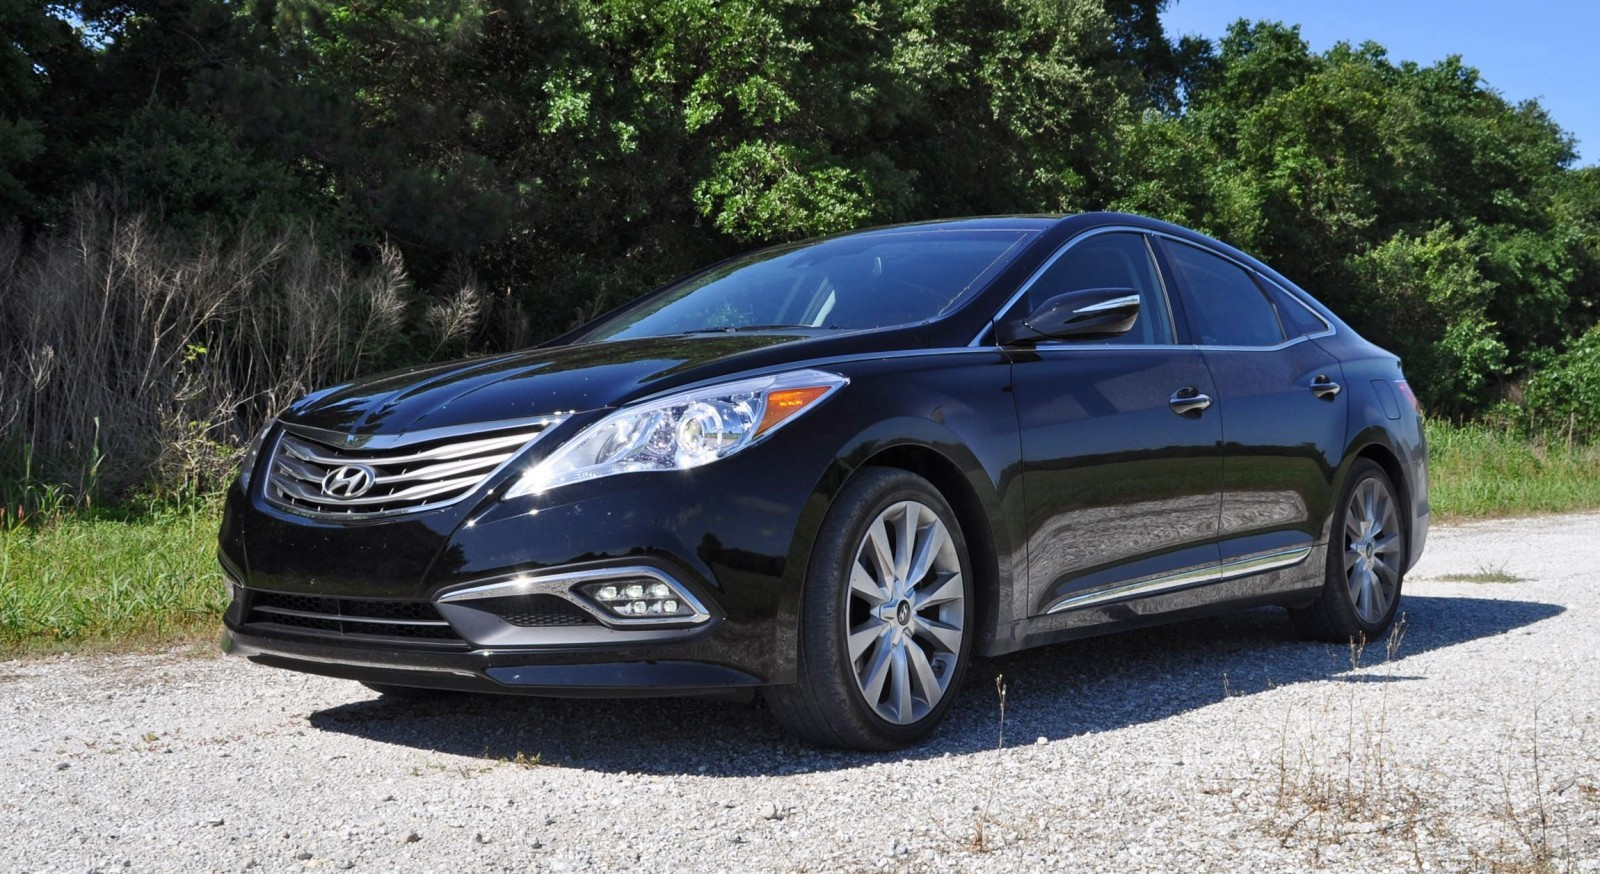 Road Test Review - 2015 Hyundai AZERA Limited 6